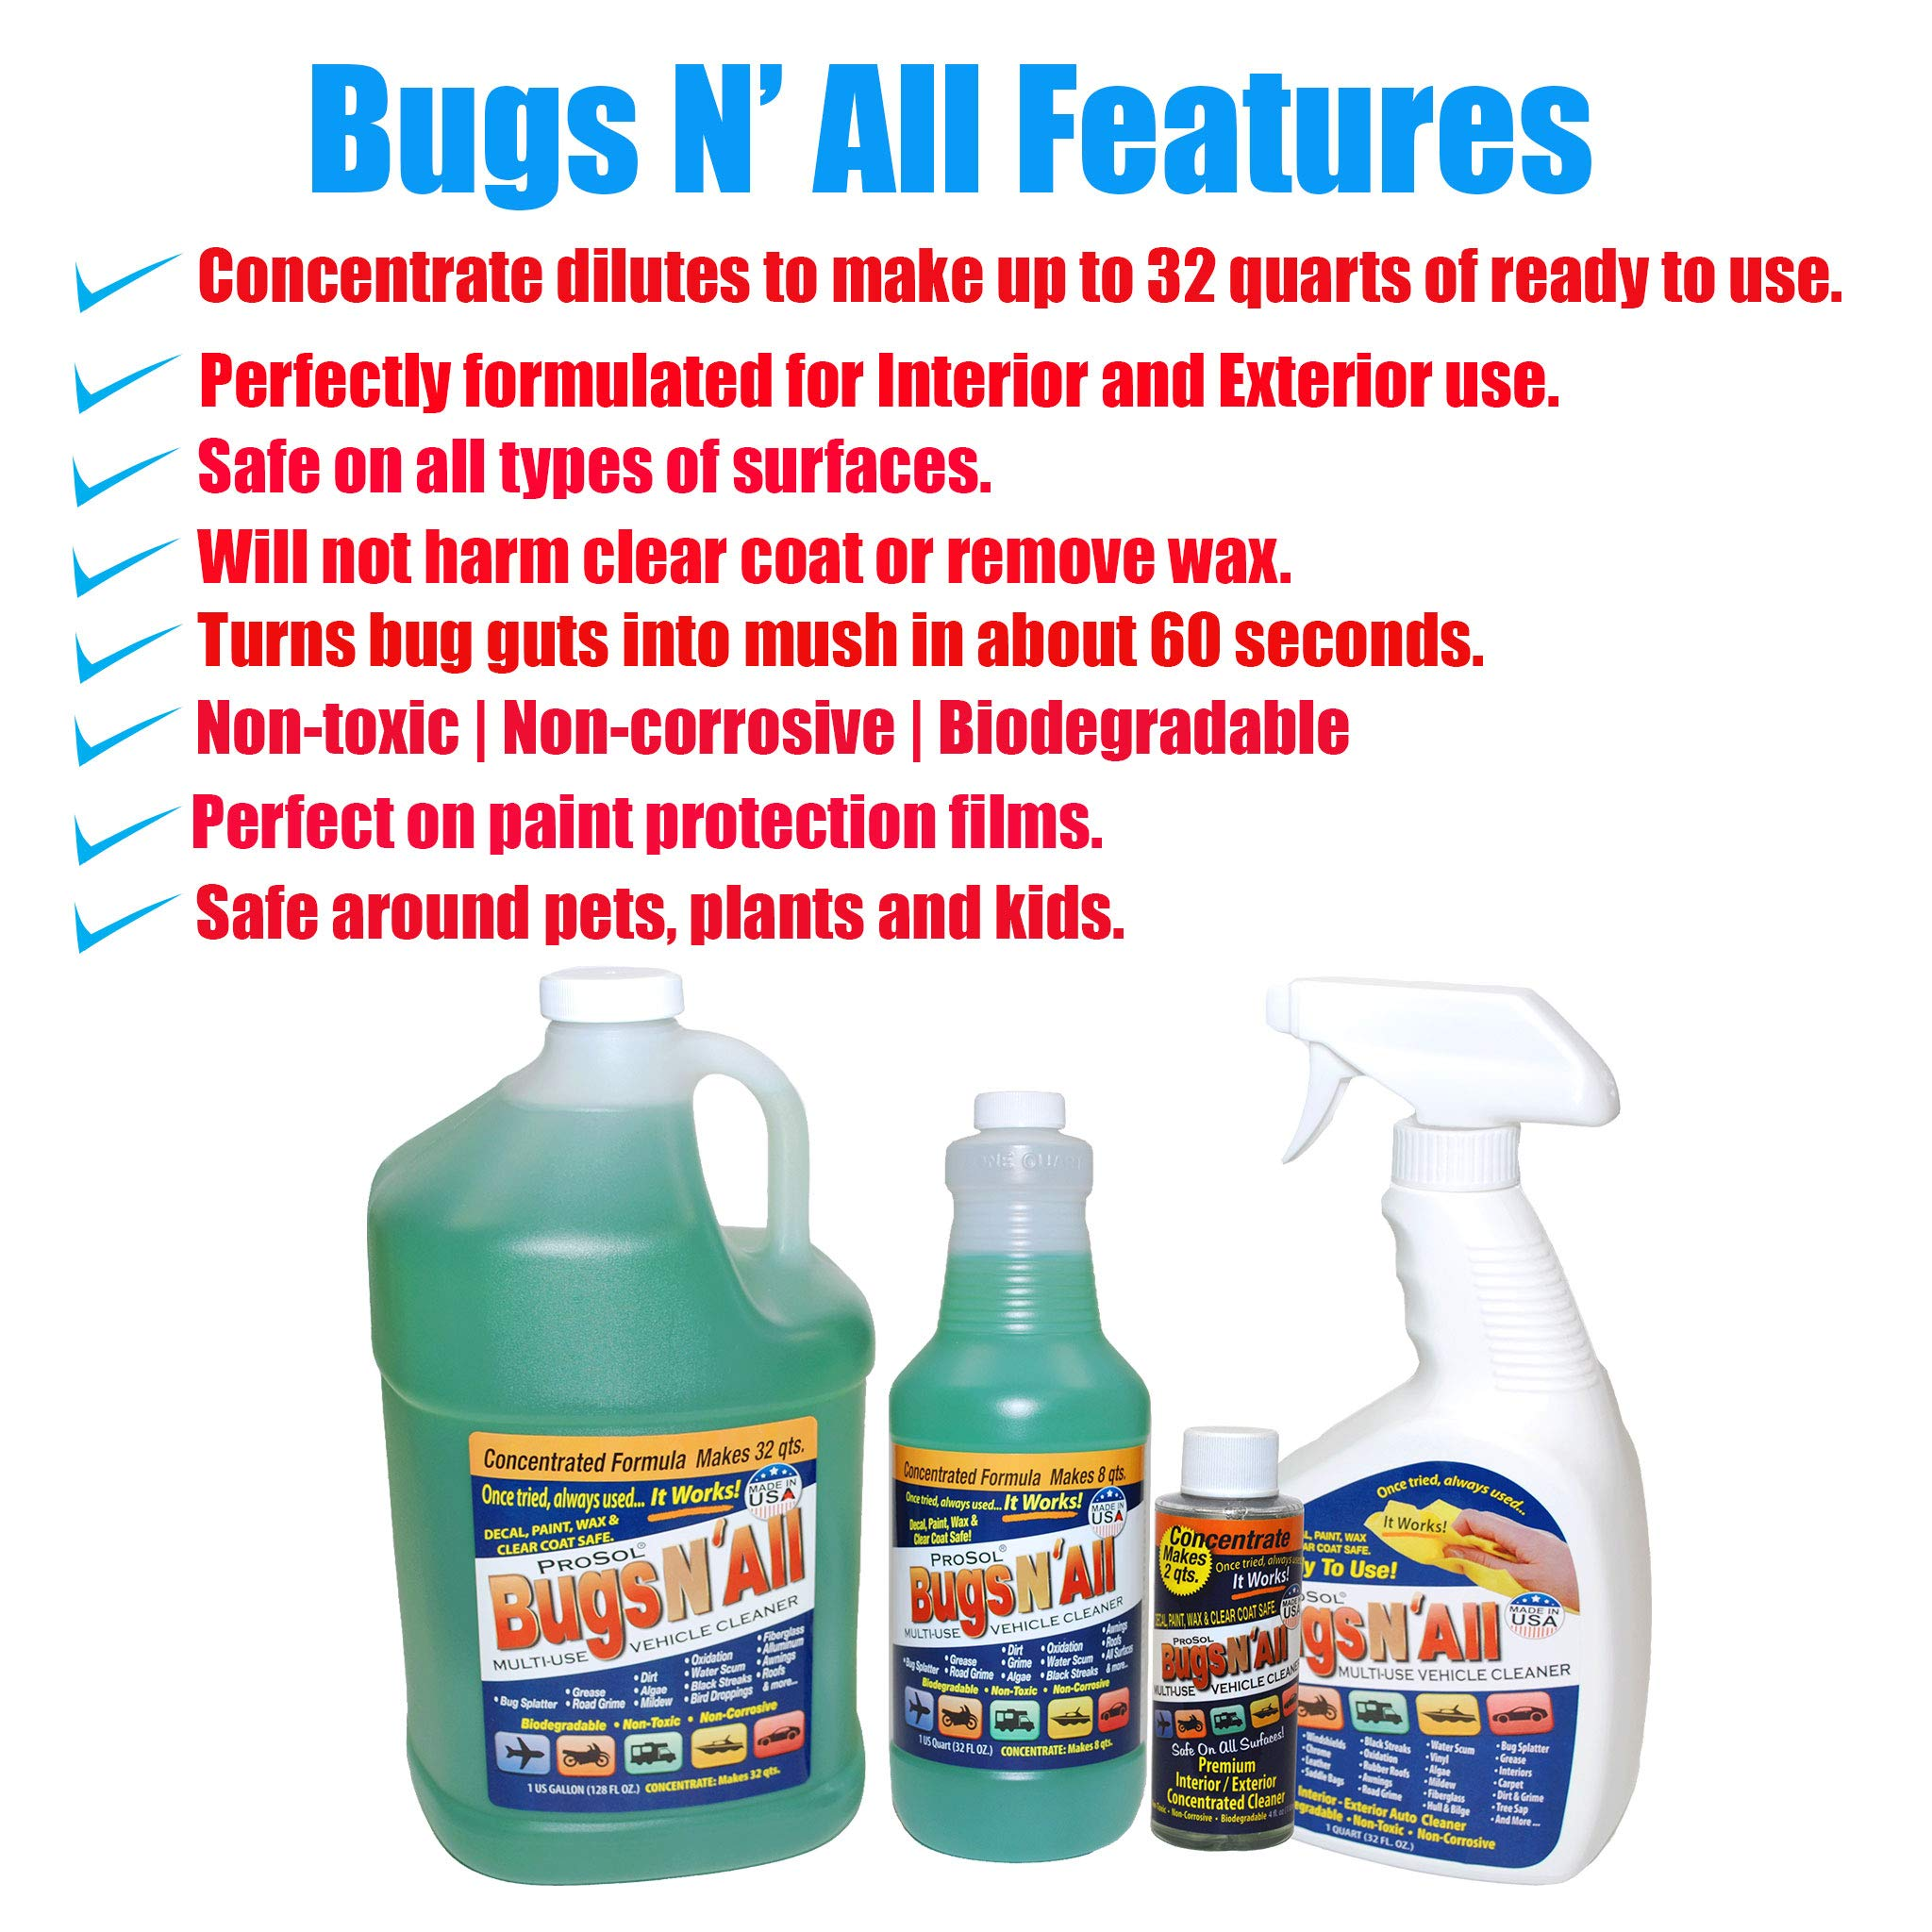 Bugs N All - Multi-Surface Vehicle Cleaner/Bug Remover. 1qt. Concentrate Makes 8 Quarts. Includes an Empty 1 Qt. Spray Bottle - Safe on Wax, Clear Coat, Paint, Decals and on All Surfaces. by ProSol (Image #9)